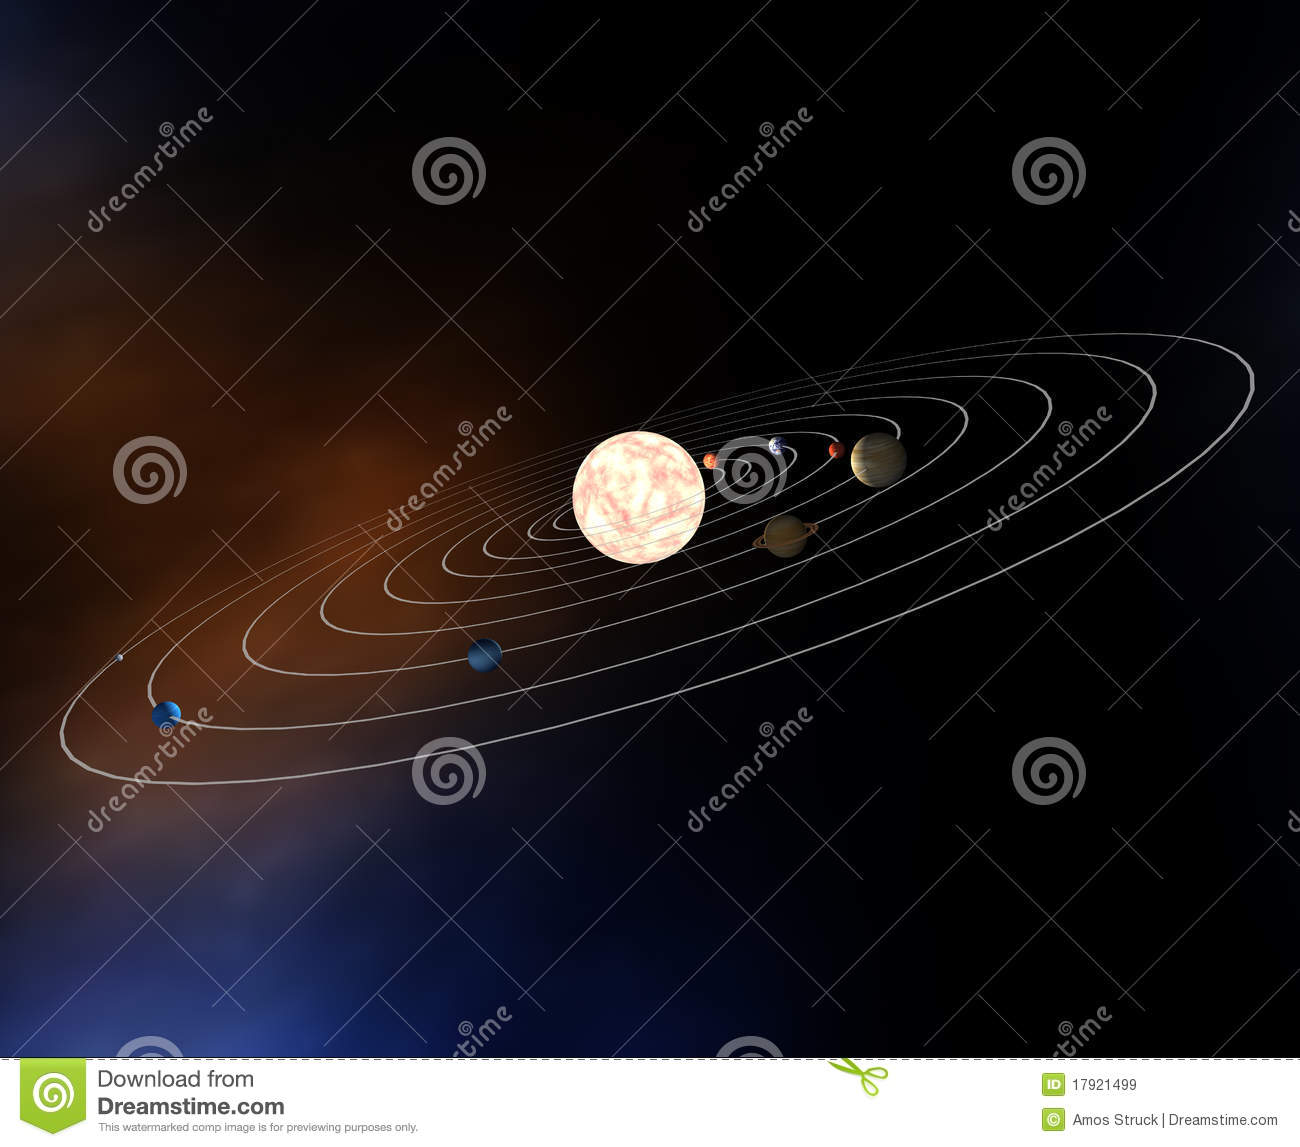 ozone layer for kids images lunar eclipse diagram umbra and penumbra additionally solar